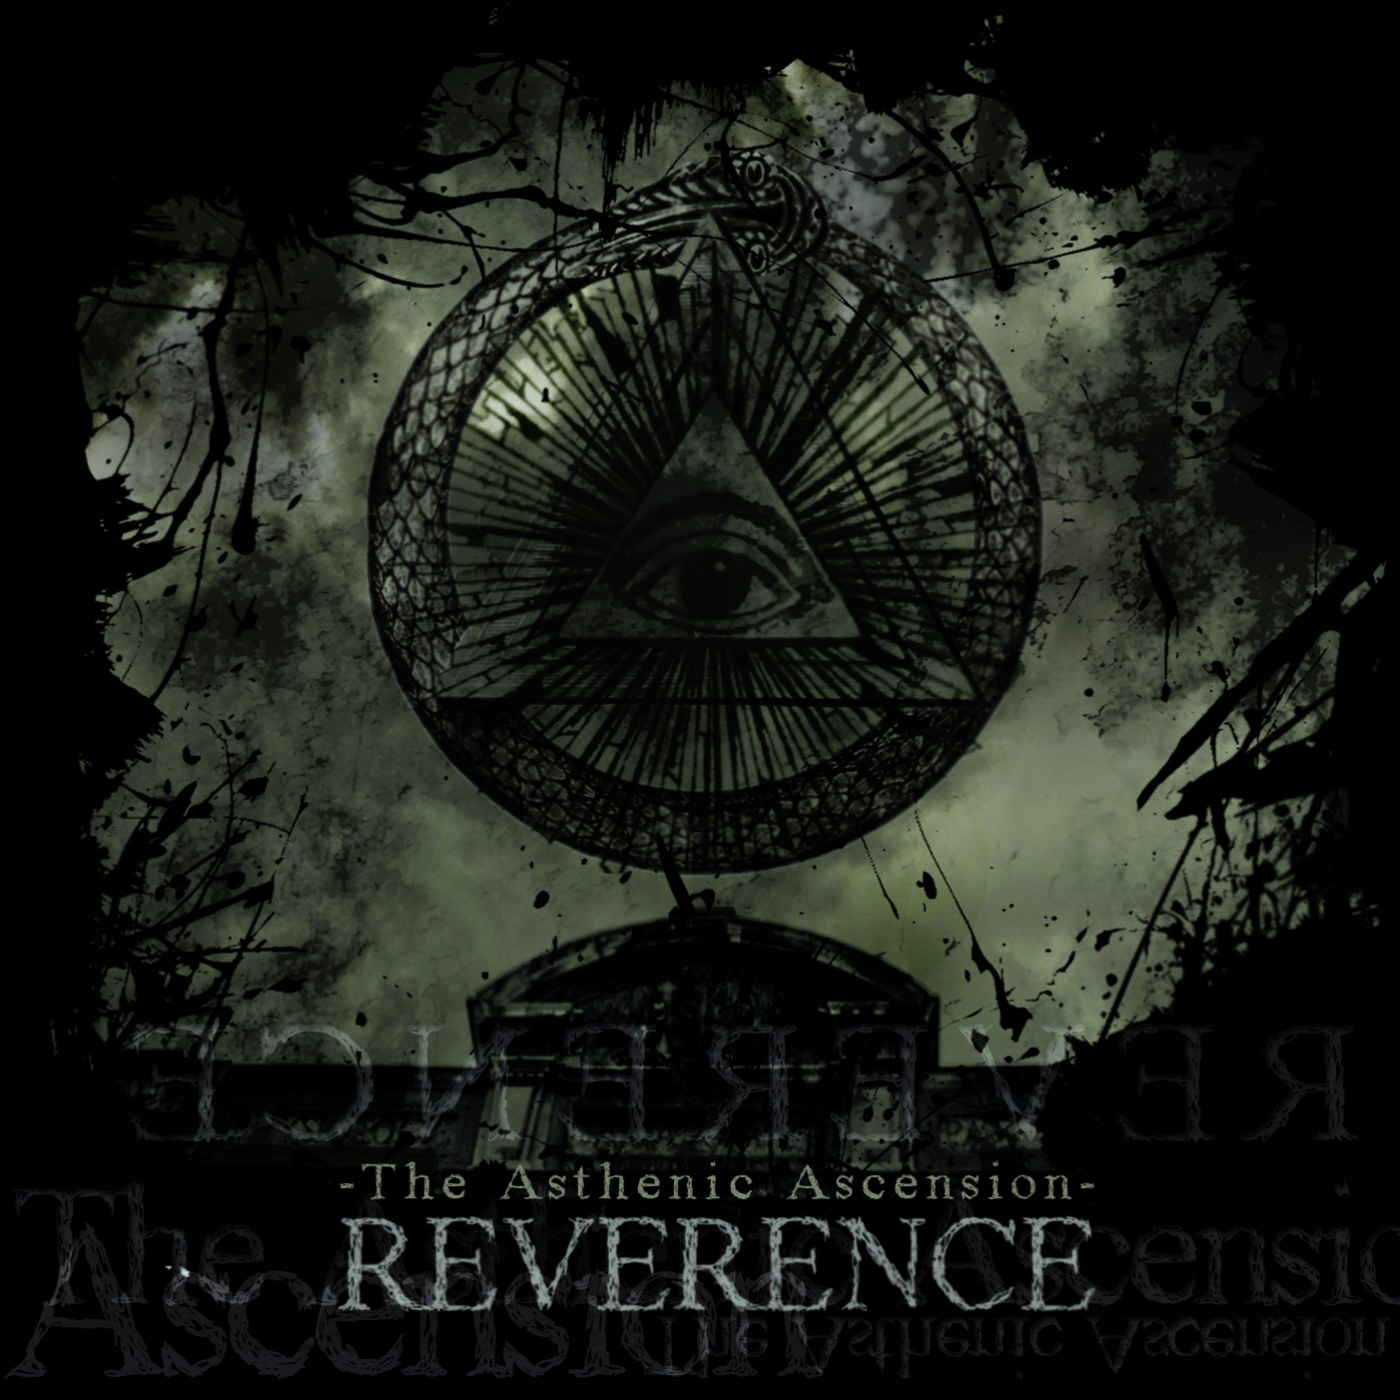 Review for Reverence (FRA) - The Asthenic Ascension